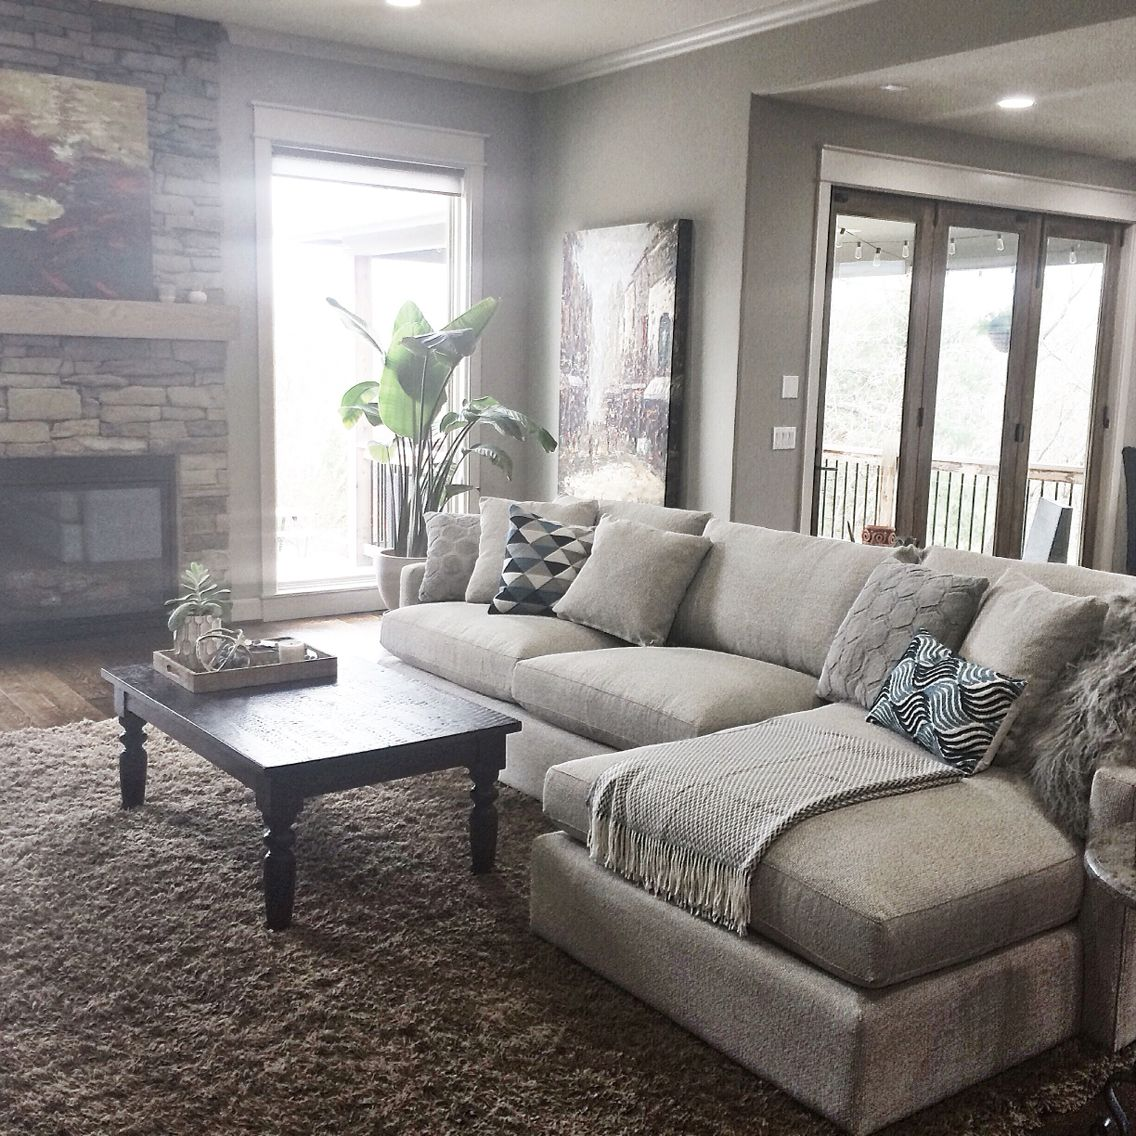 pottery barn pictures of living rooms interior for room with carpet and decorative plant laras